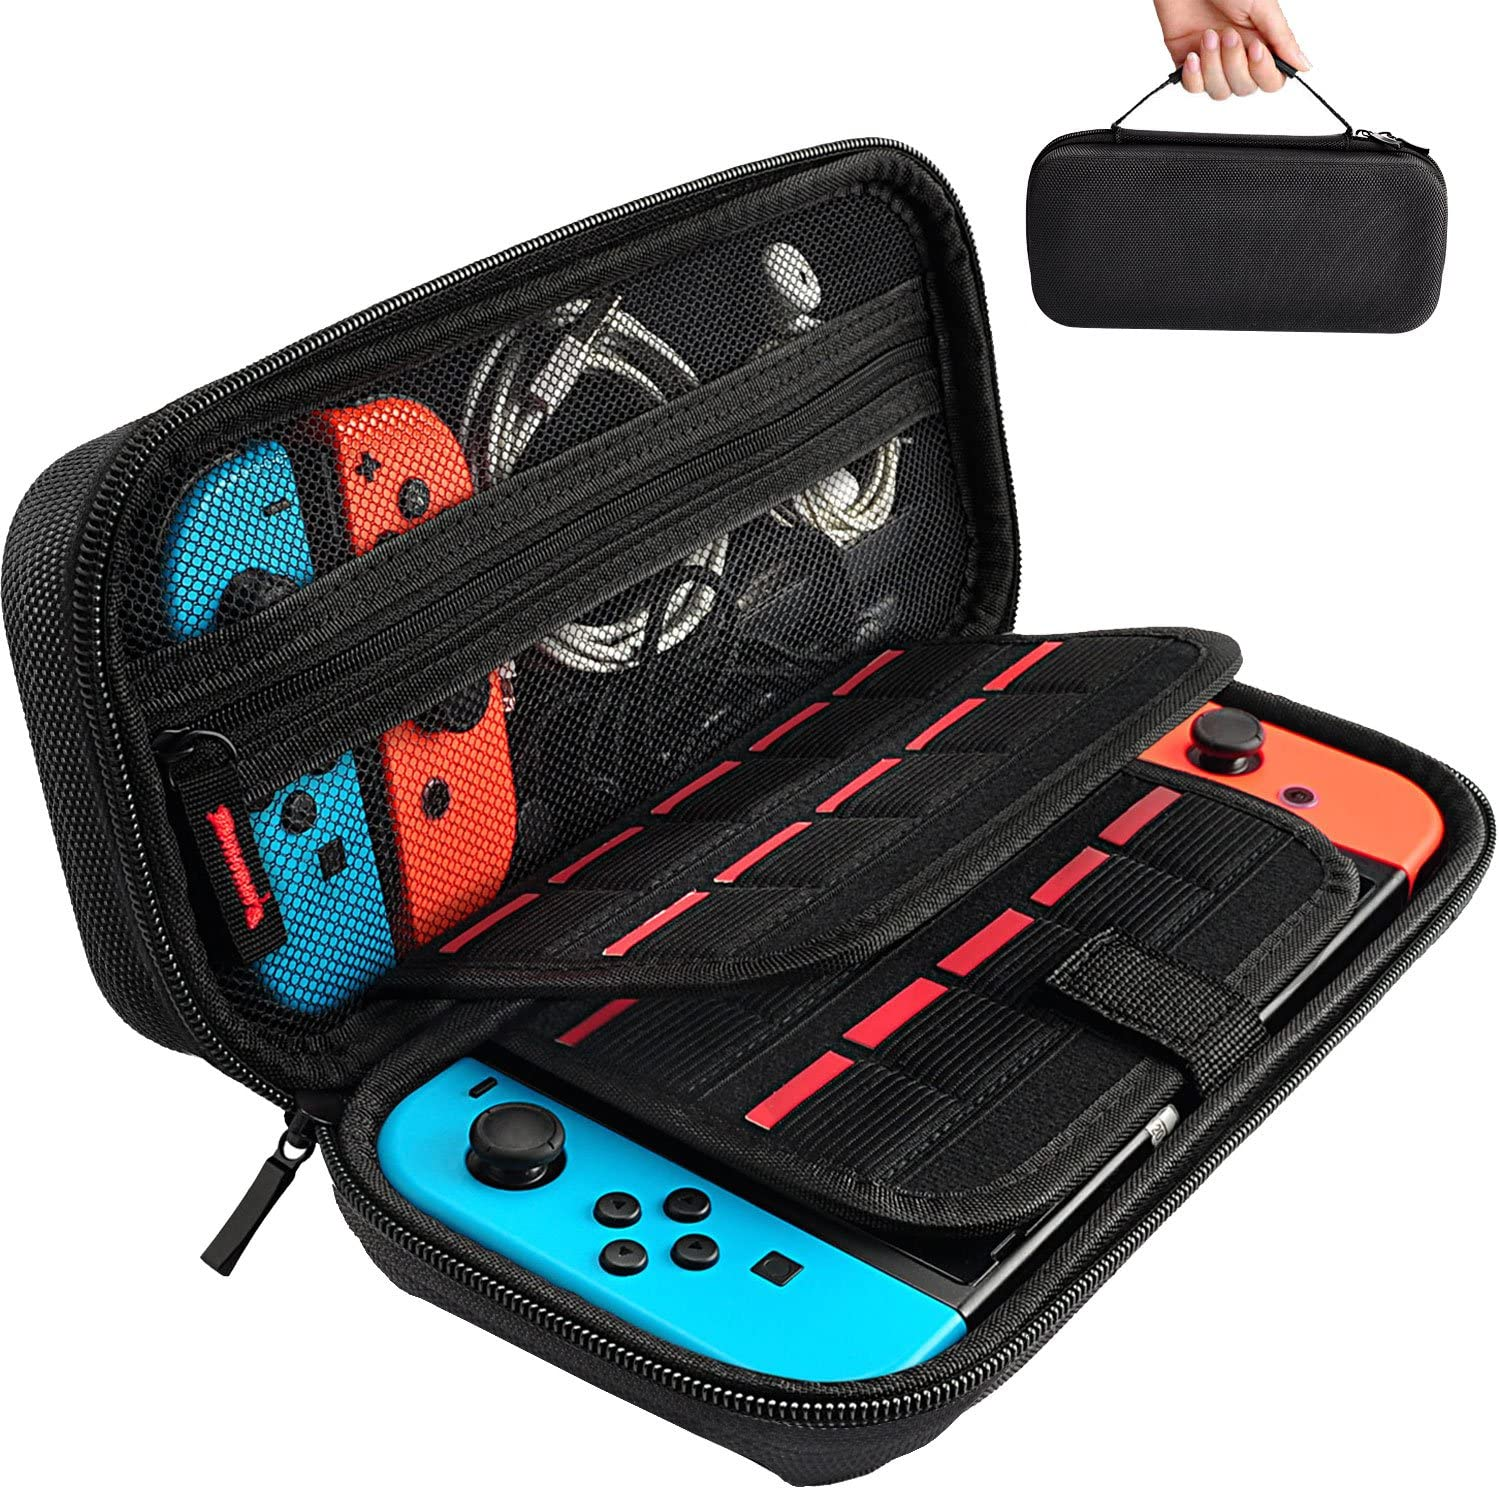 Hestia Goods Switch Carrying Case for Nintendo Switch, With 20 Games Cartridges Protective Hard Shell Travel Carrying Case Pouch for Nintendo Switch Console & Accessories, Black